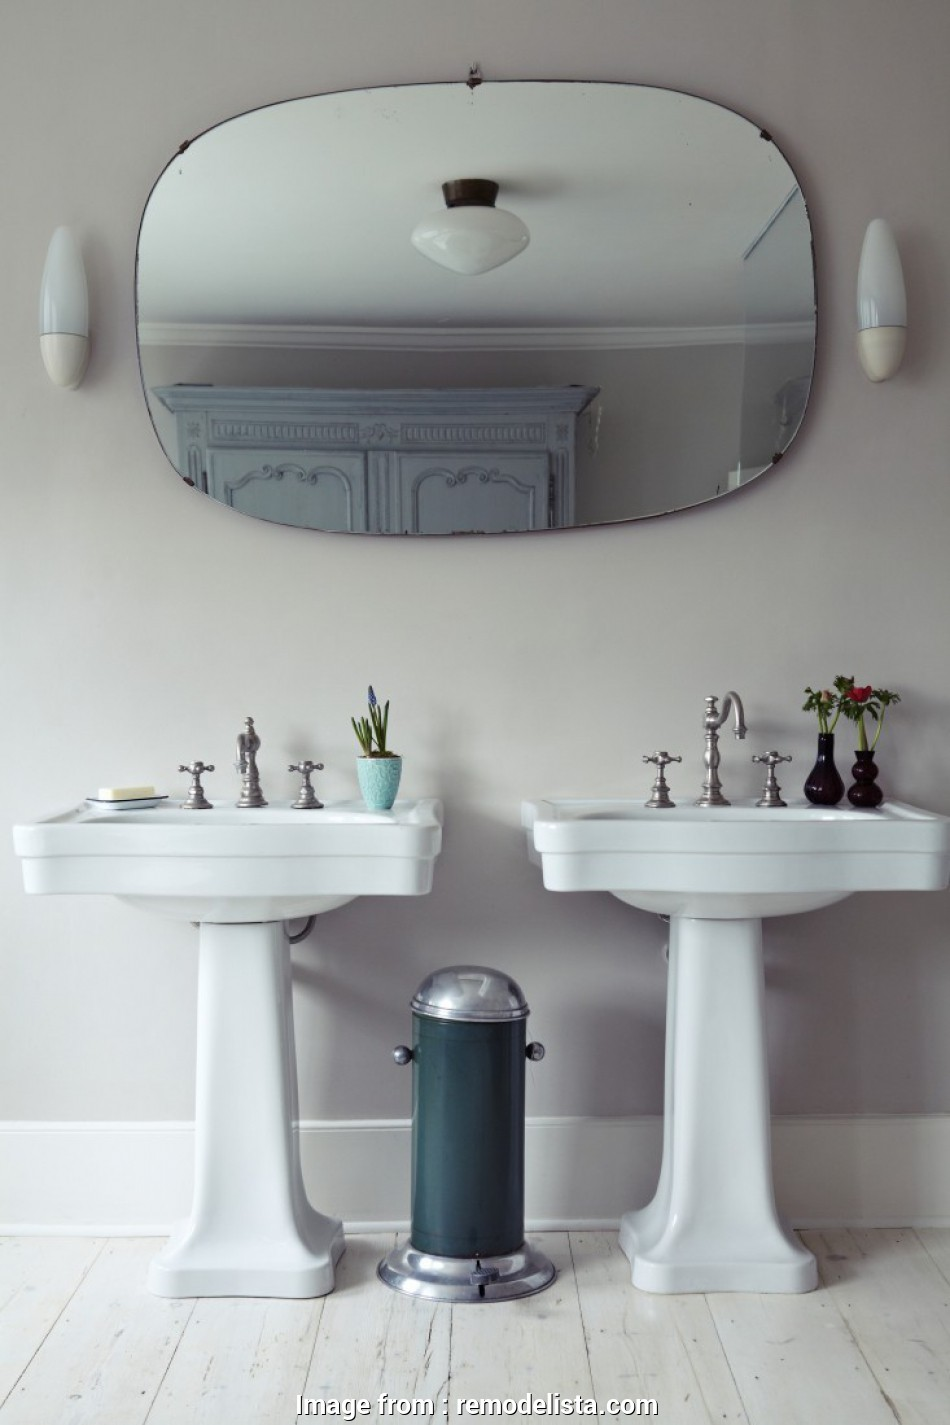 how to install ceiling light in bathroom In Michelle McKenna, Brenlen Jinken's Renovated London Town House,, master bath, a 9 Creative How To Install Ceiling Light In Bathroom Galleries